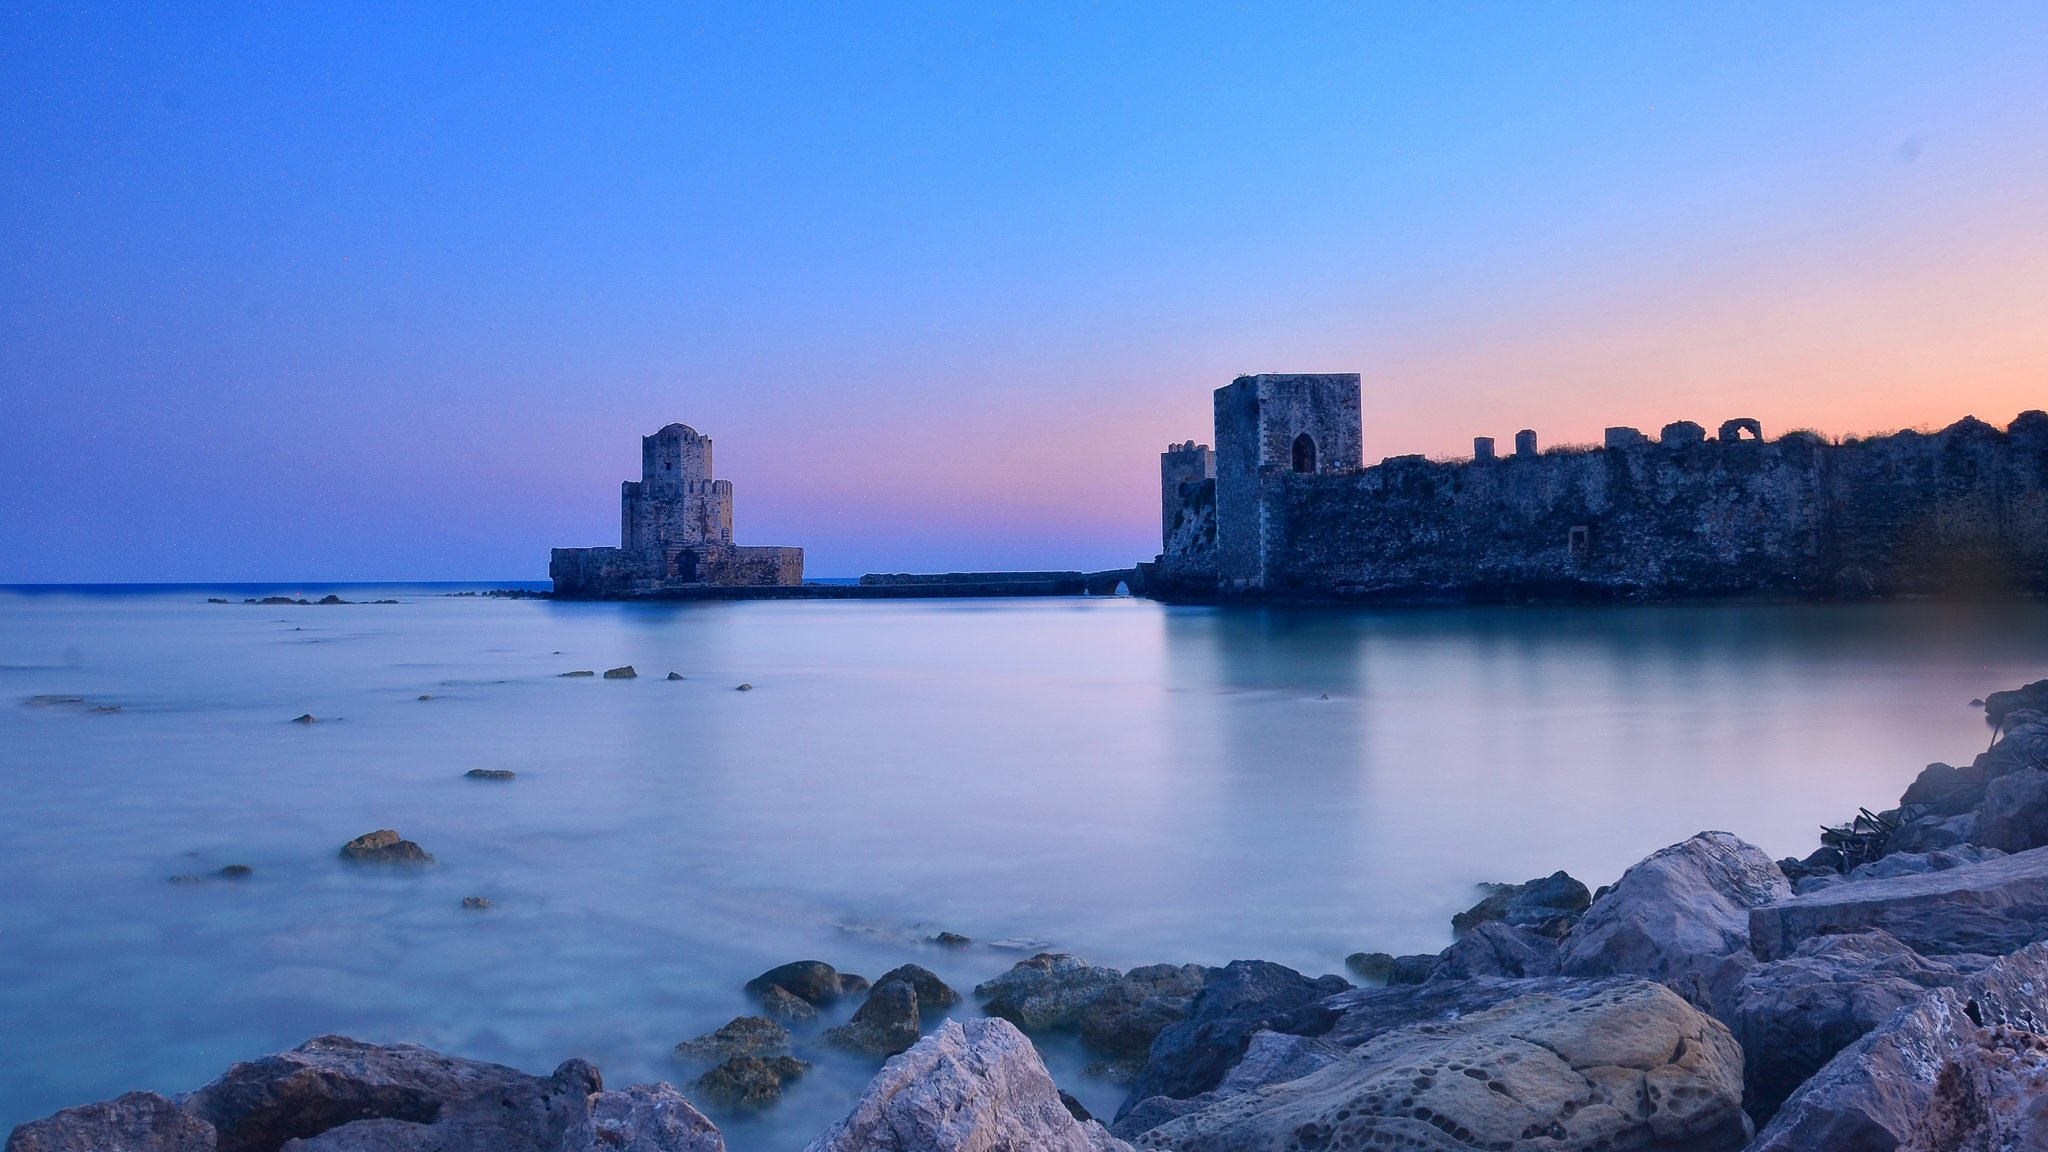 methoni by florian.glechner